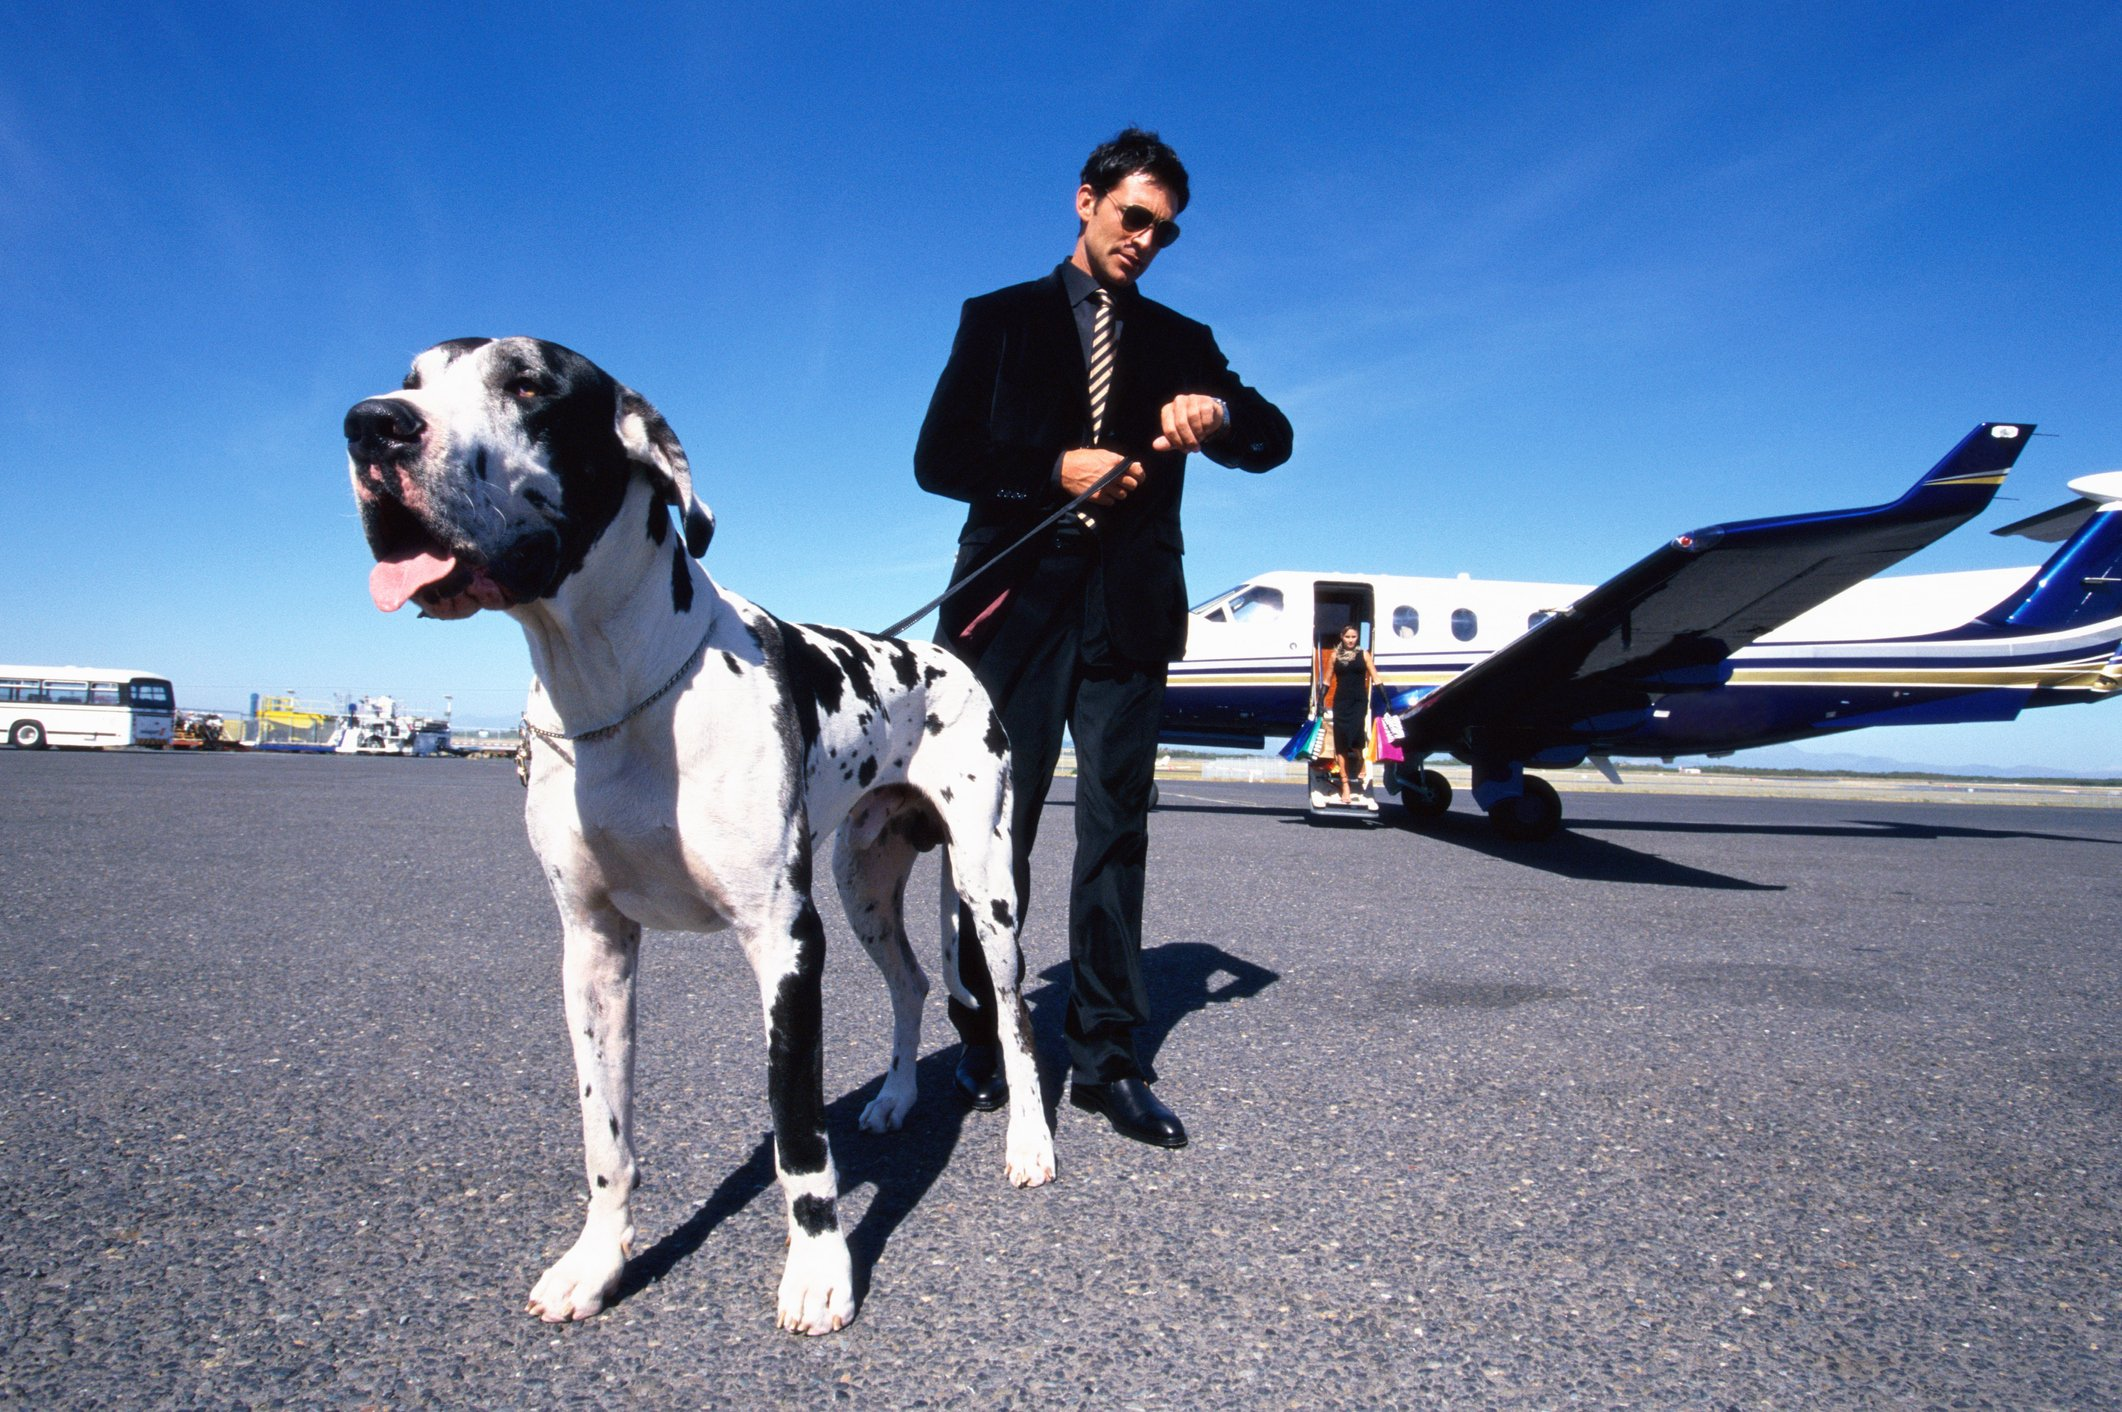 Man in black suit holding his dog after alighting a plane.   Photo: Getty Images